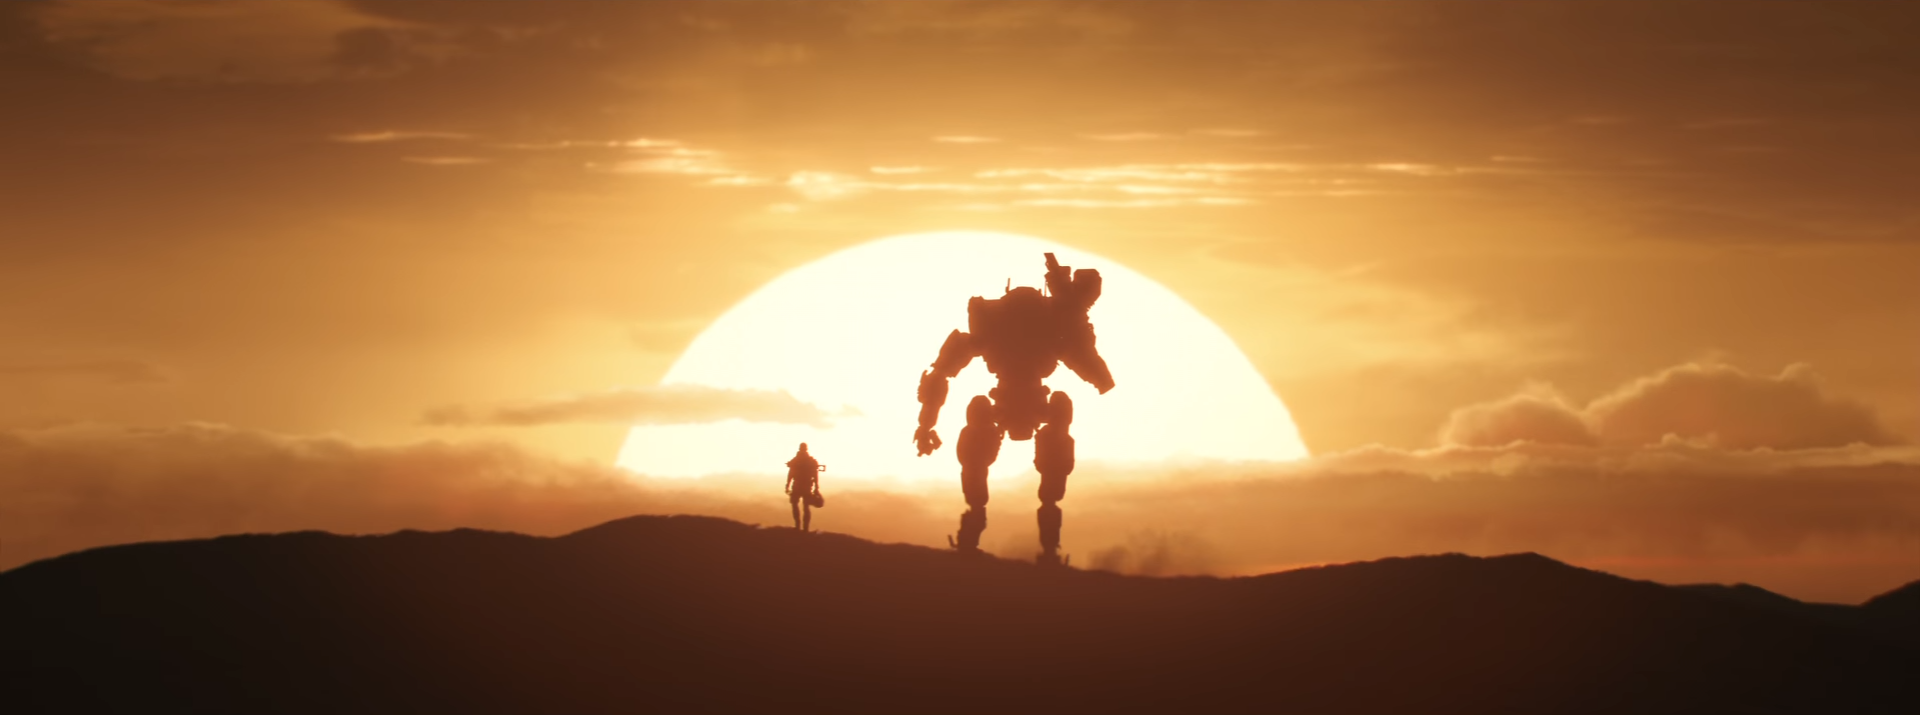 titanfall wallpaper — titanfall 2 forums